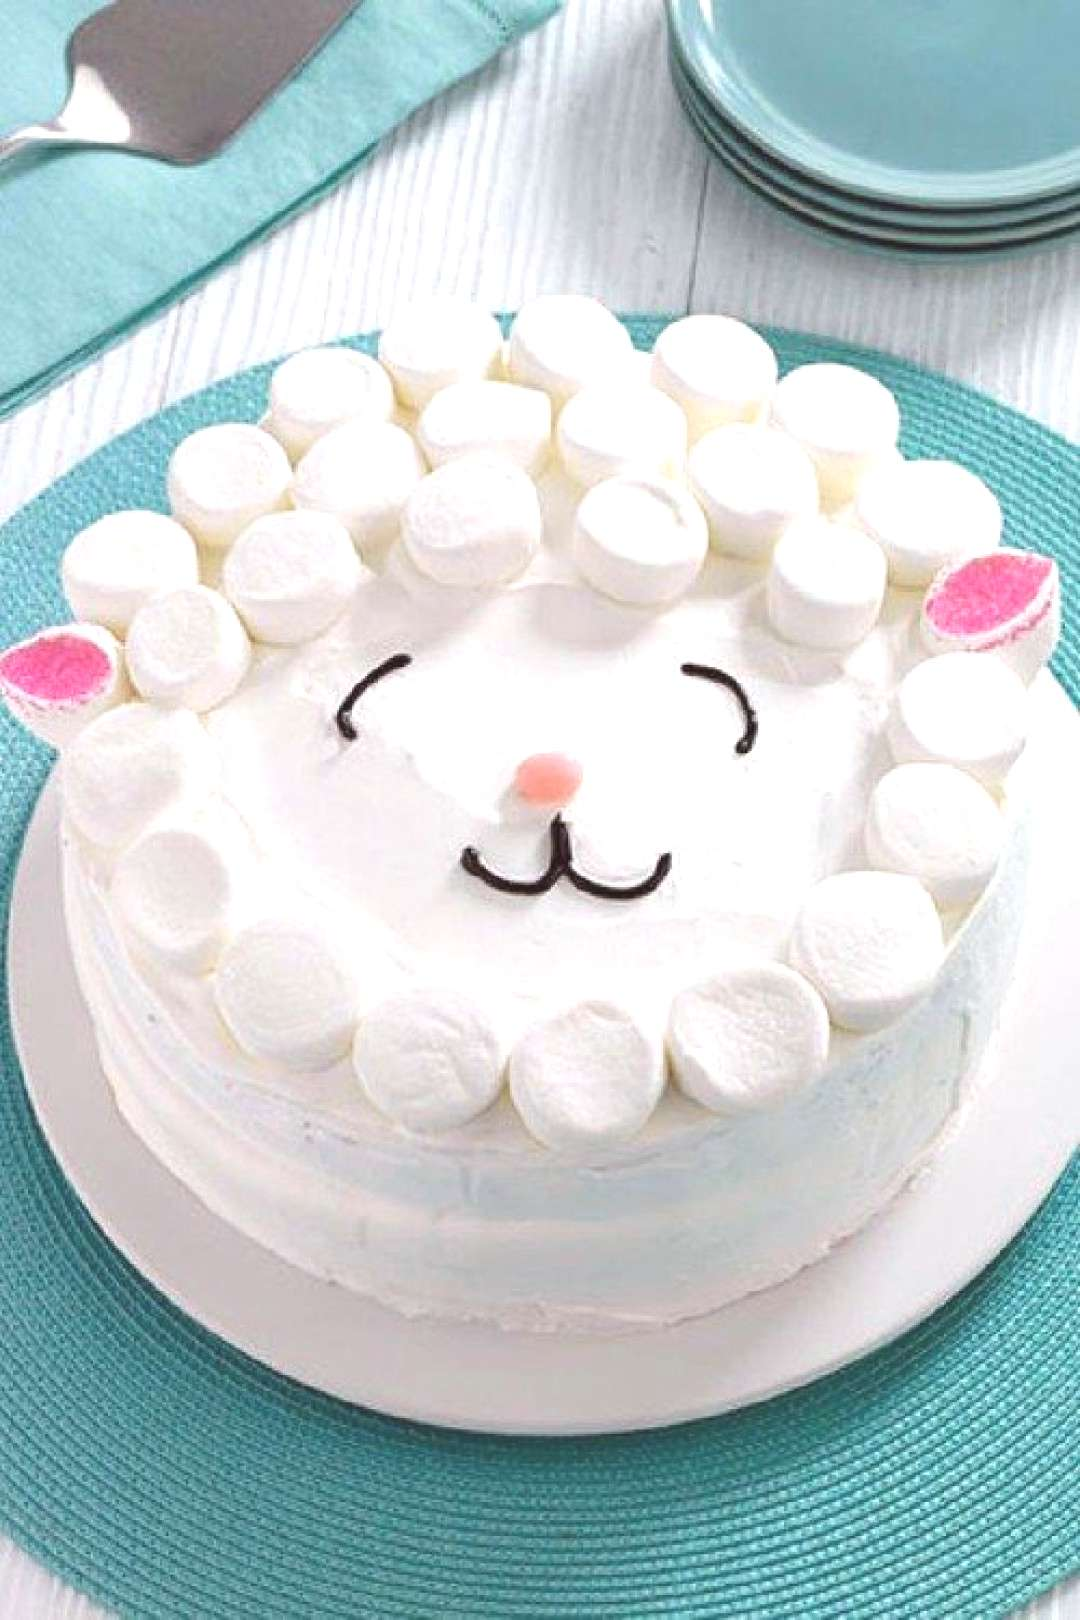 4 incredibly simple decorating ideas for cakes and pies#cakes